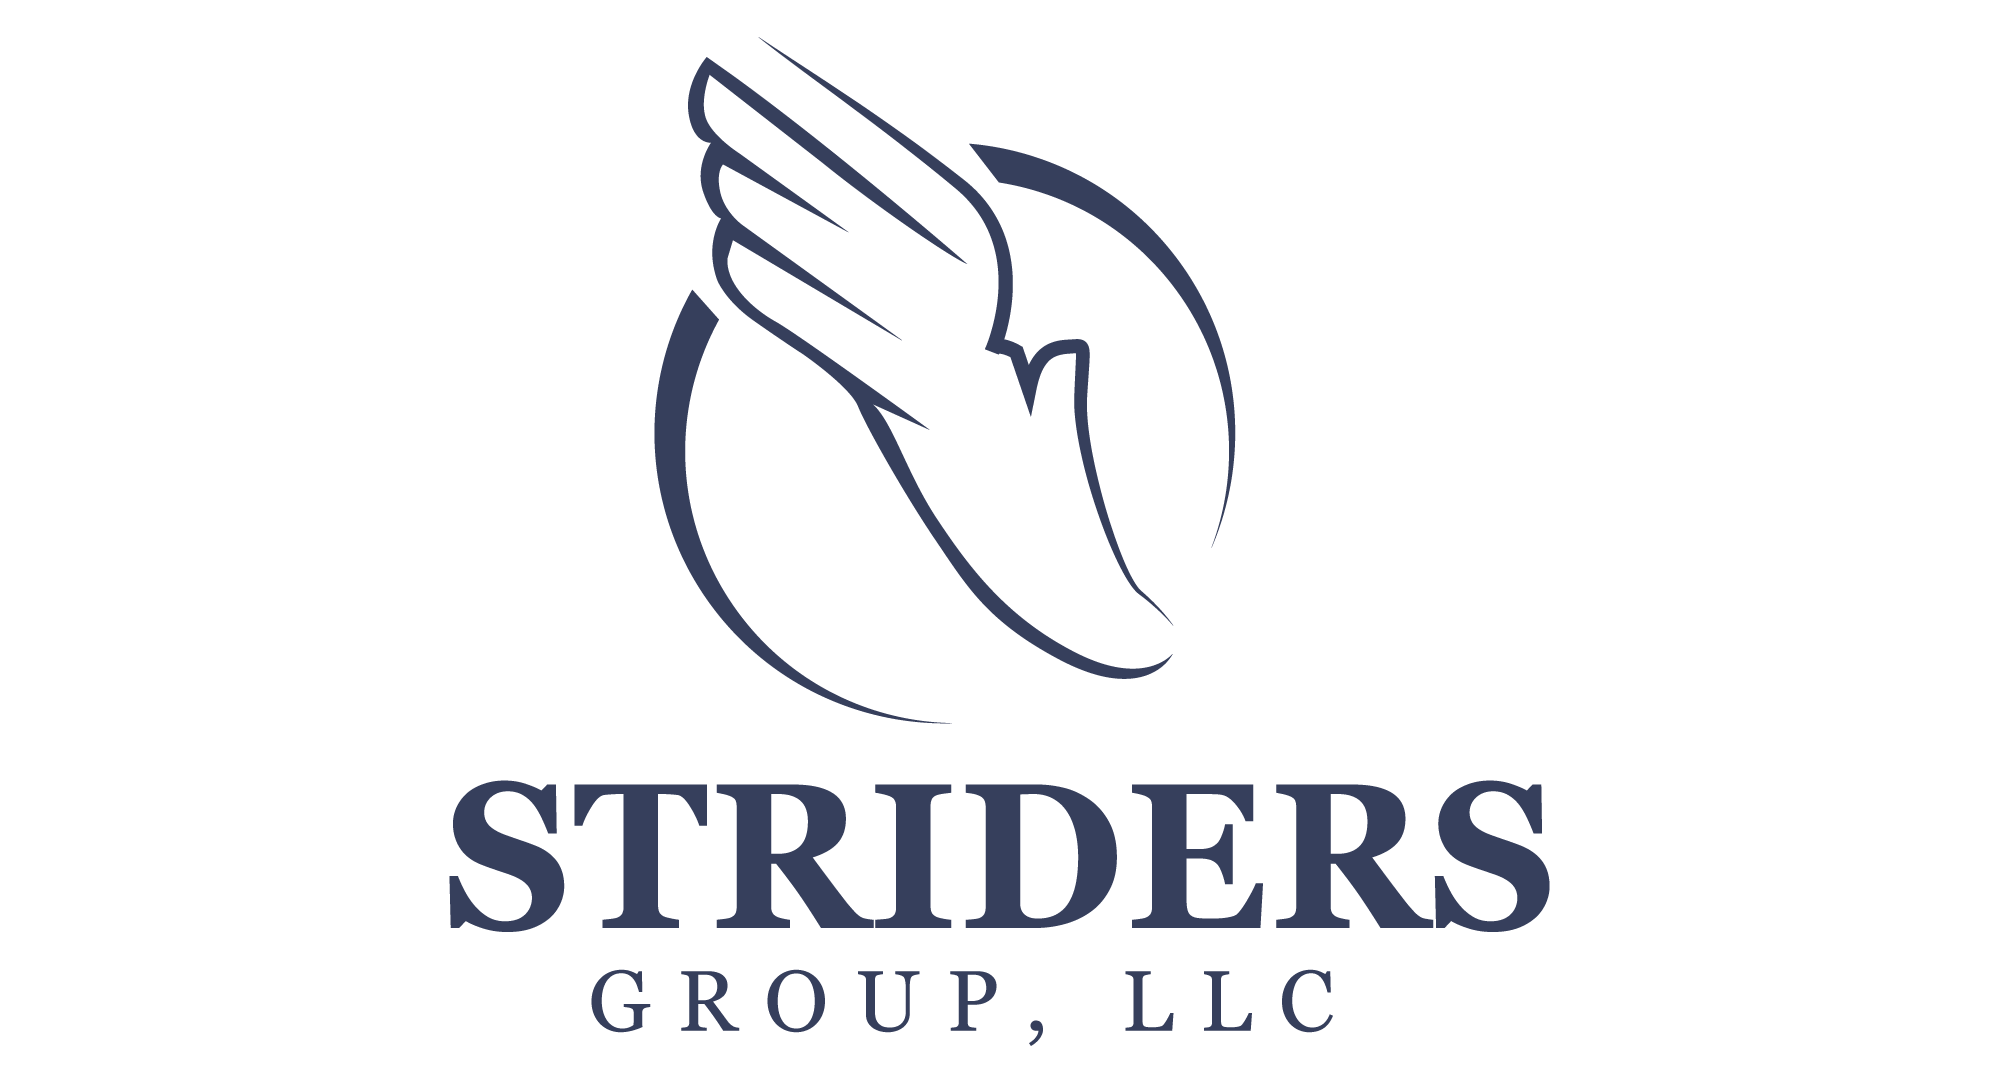 Striders Group LLC | Marketing strategy and SEO services agency